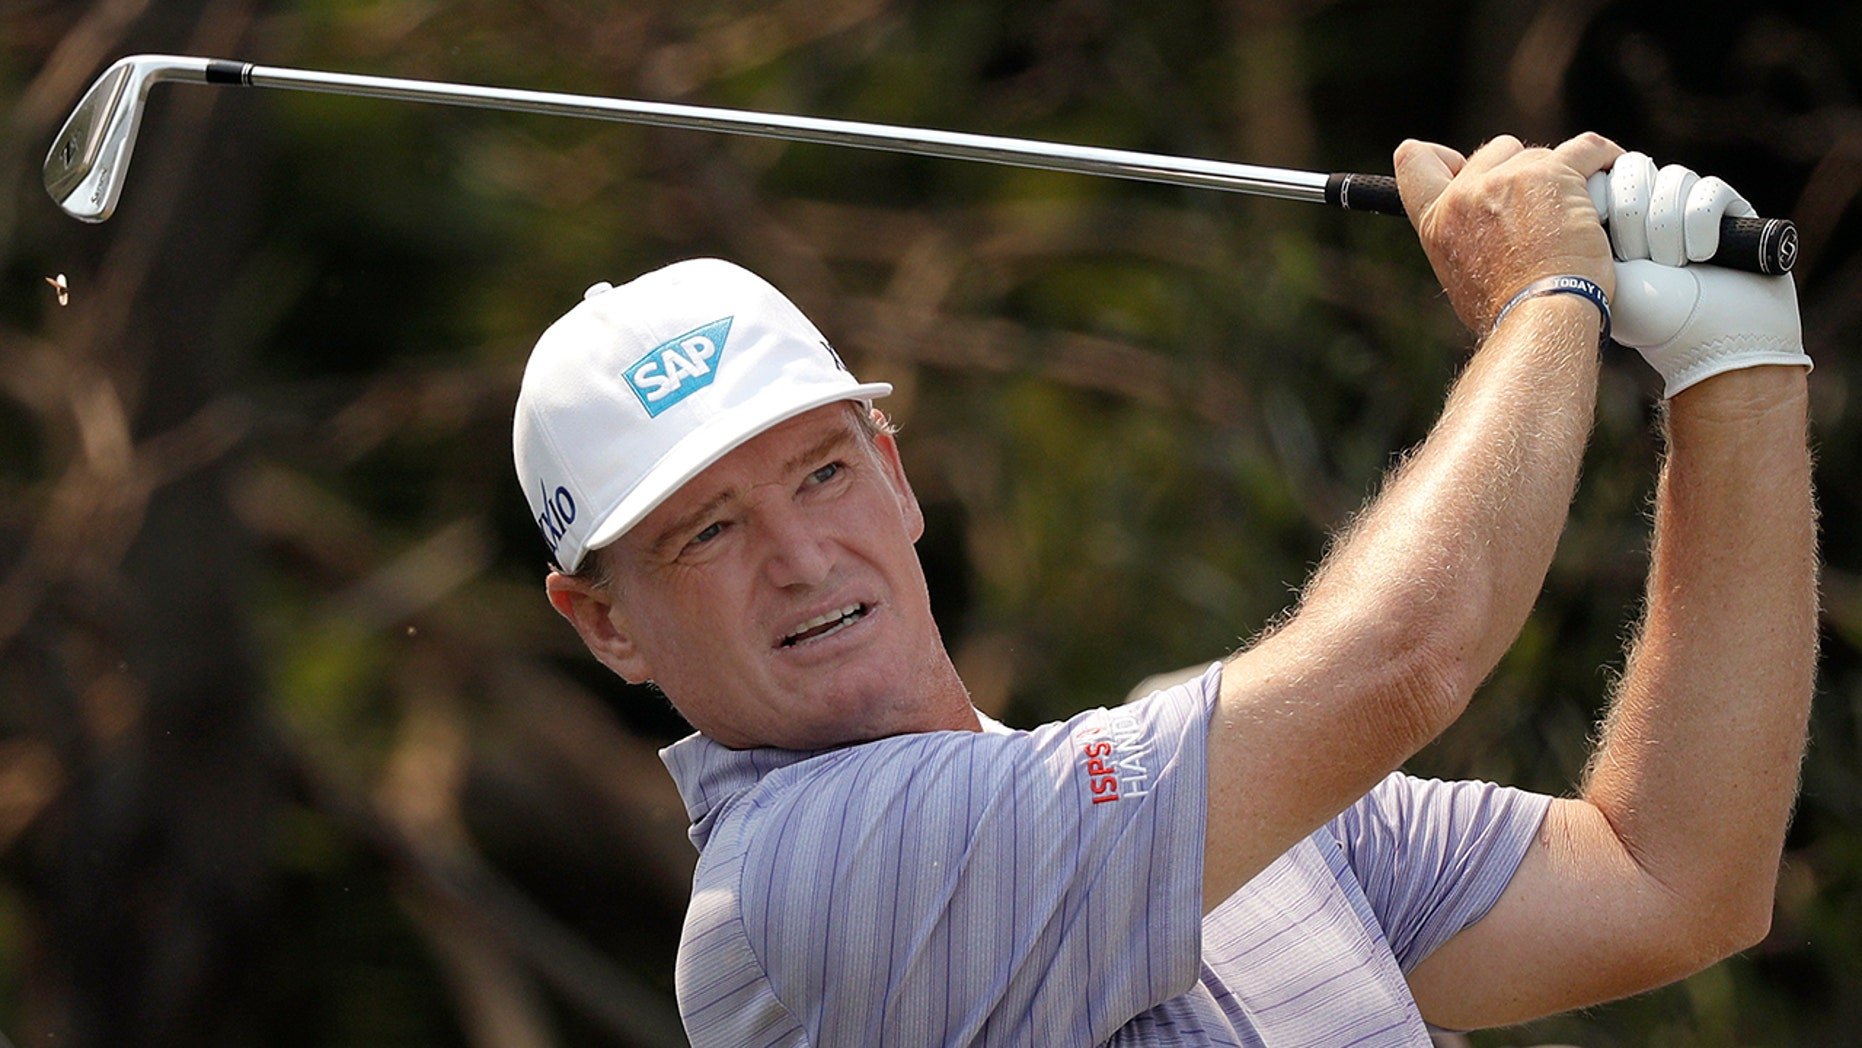 South Africa's Ernie Els tees off on a second hole during a Australian Open Golf Pro-AM in Sydney, Wednesday, Dec. 4, 2019. The Australian Open starts Thursday. (AP Photo/Rick Rycroft)